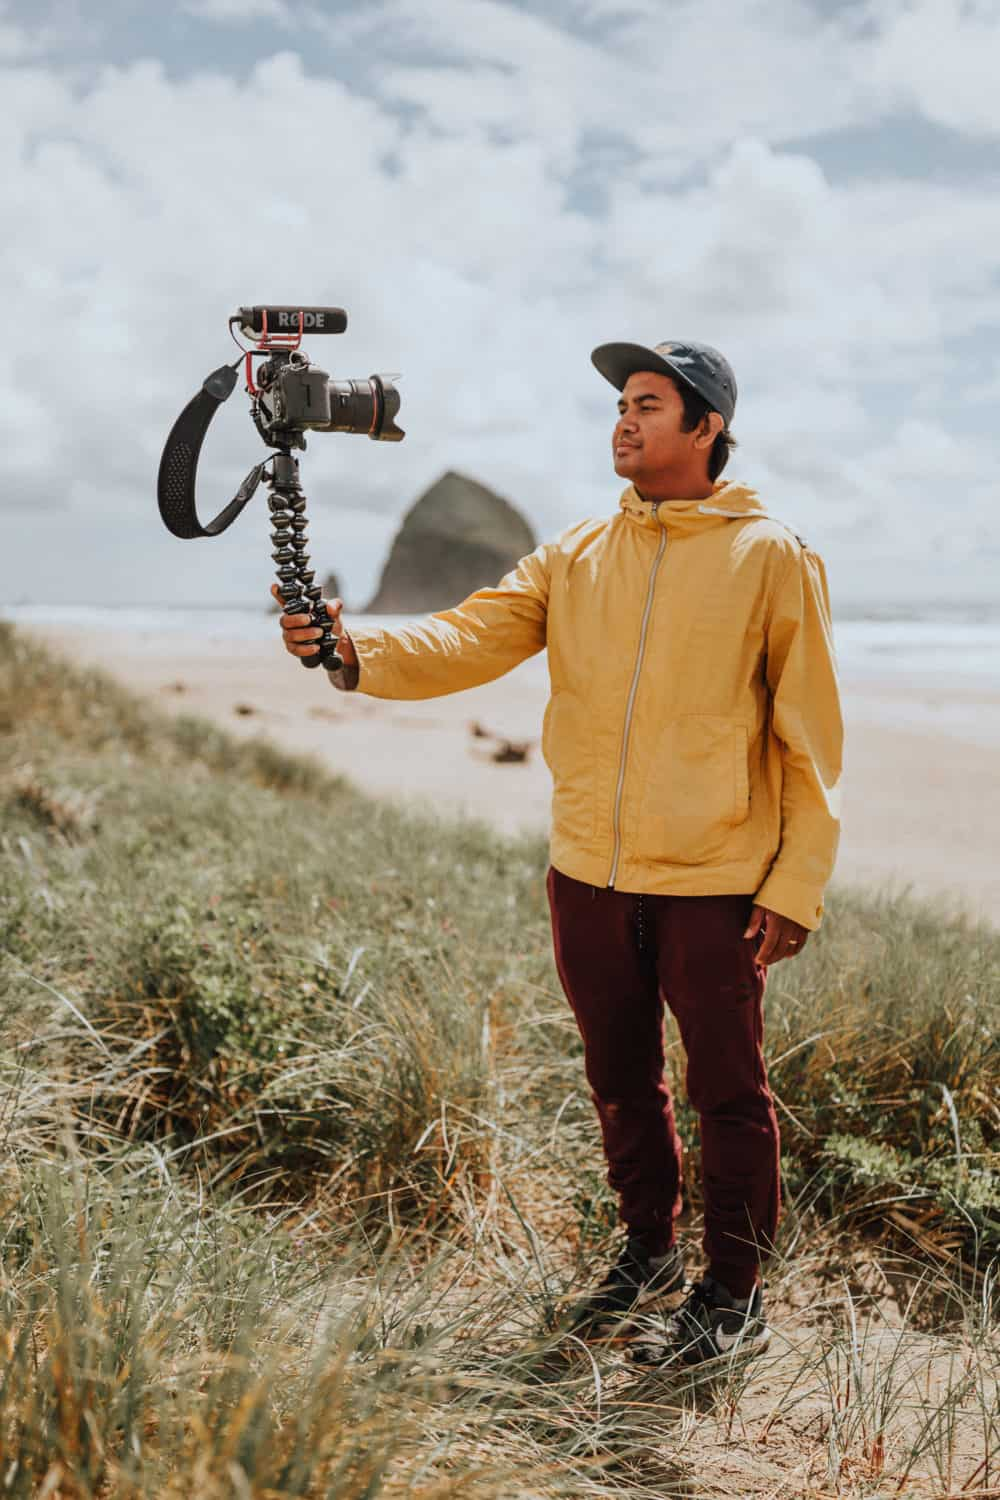 Berty Mandagie using JOBY travel tripod - one of our favorite essential photography accessories!